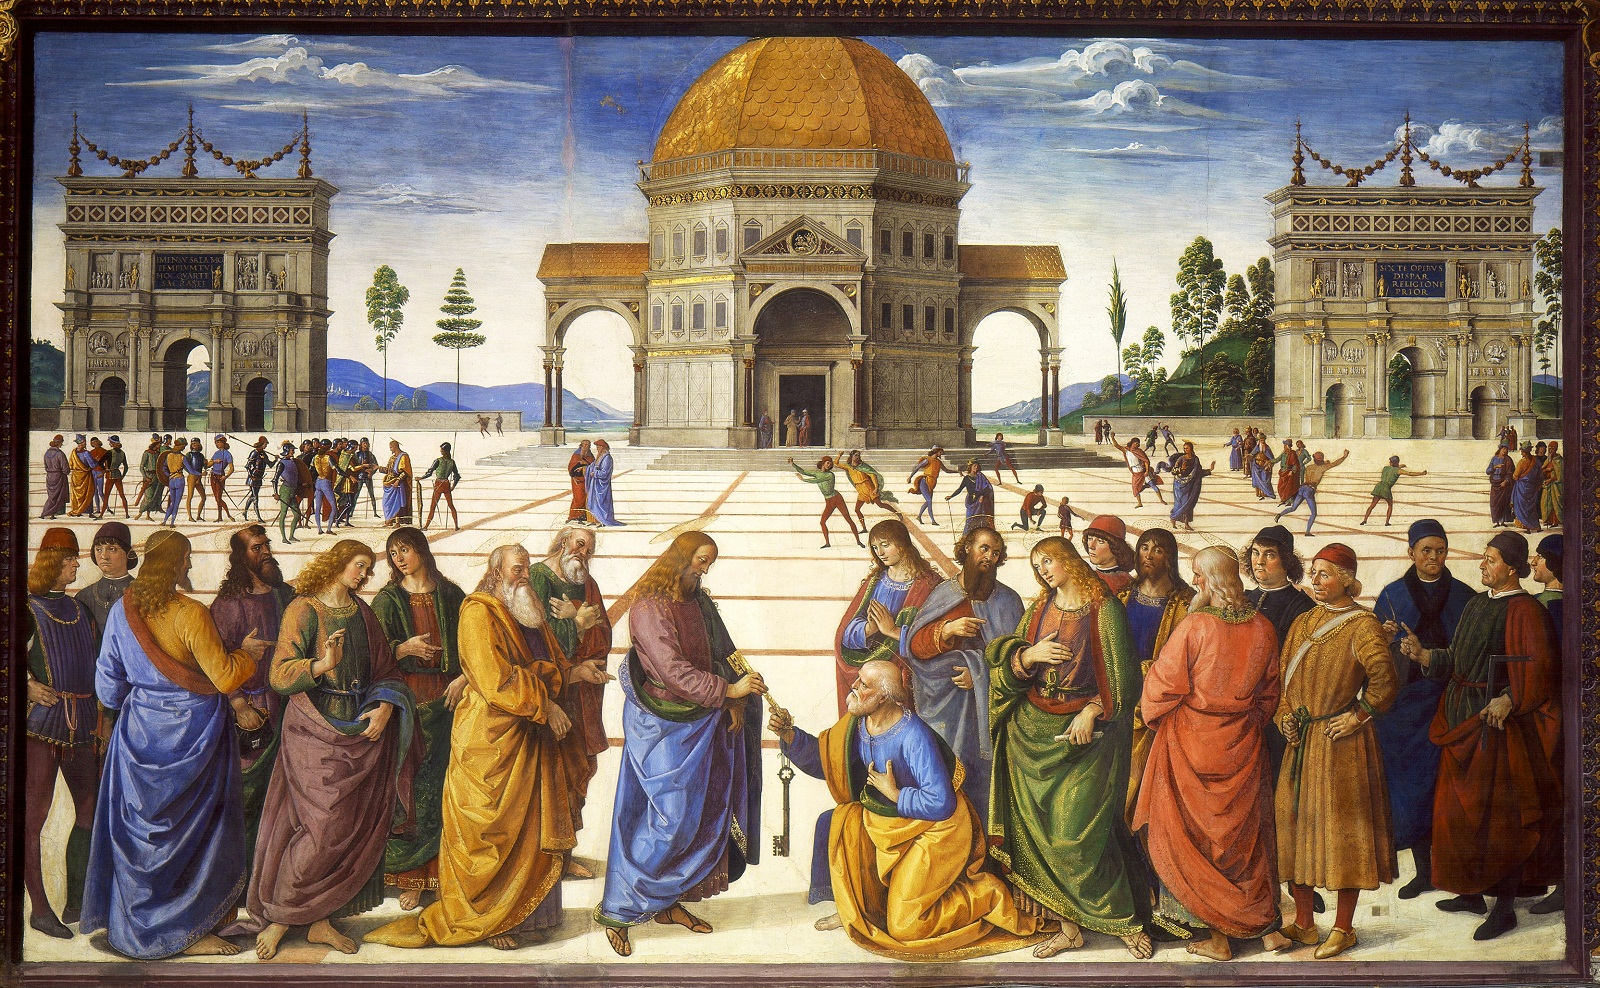 Sistine Chapel, Vatican, Pietro Perugino fresco, Delivery of the Keys